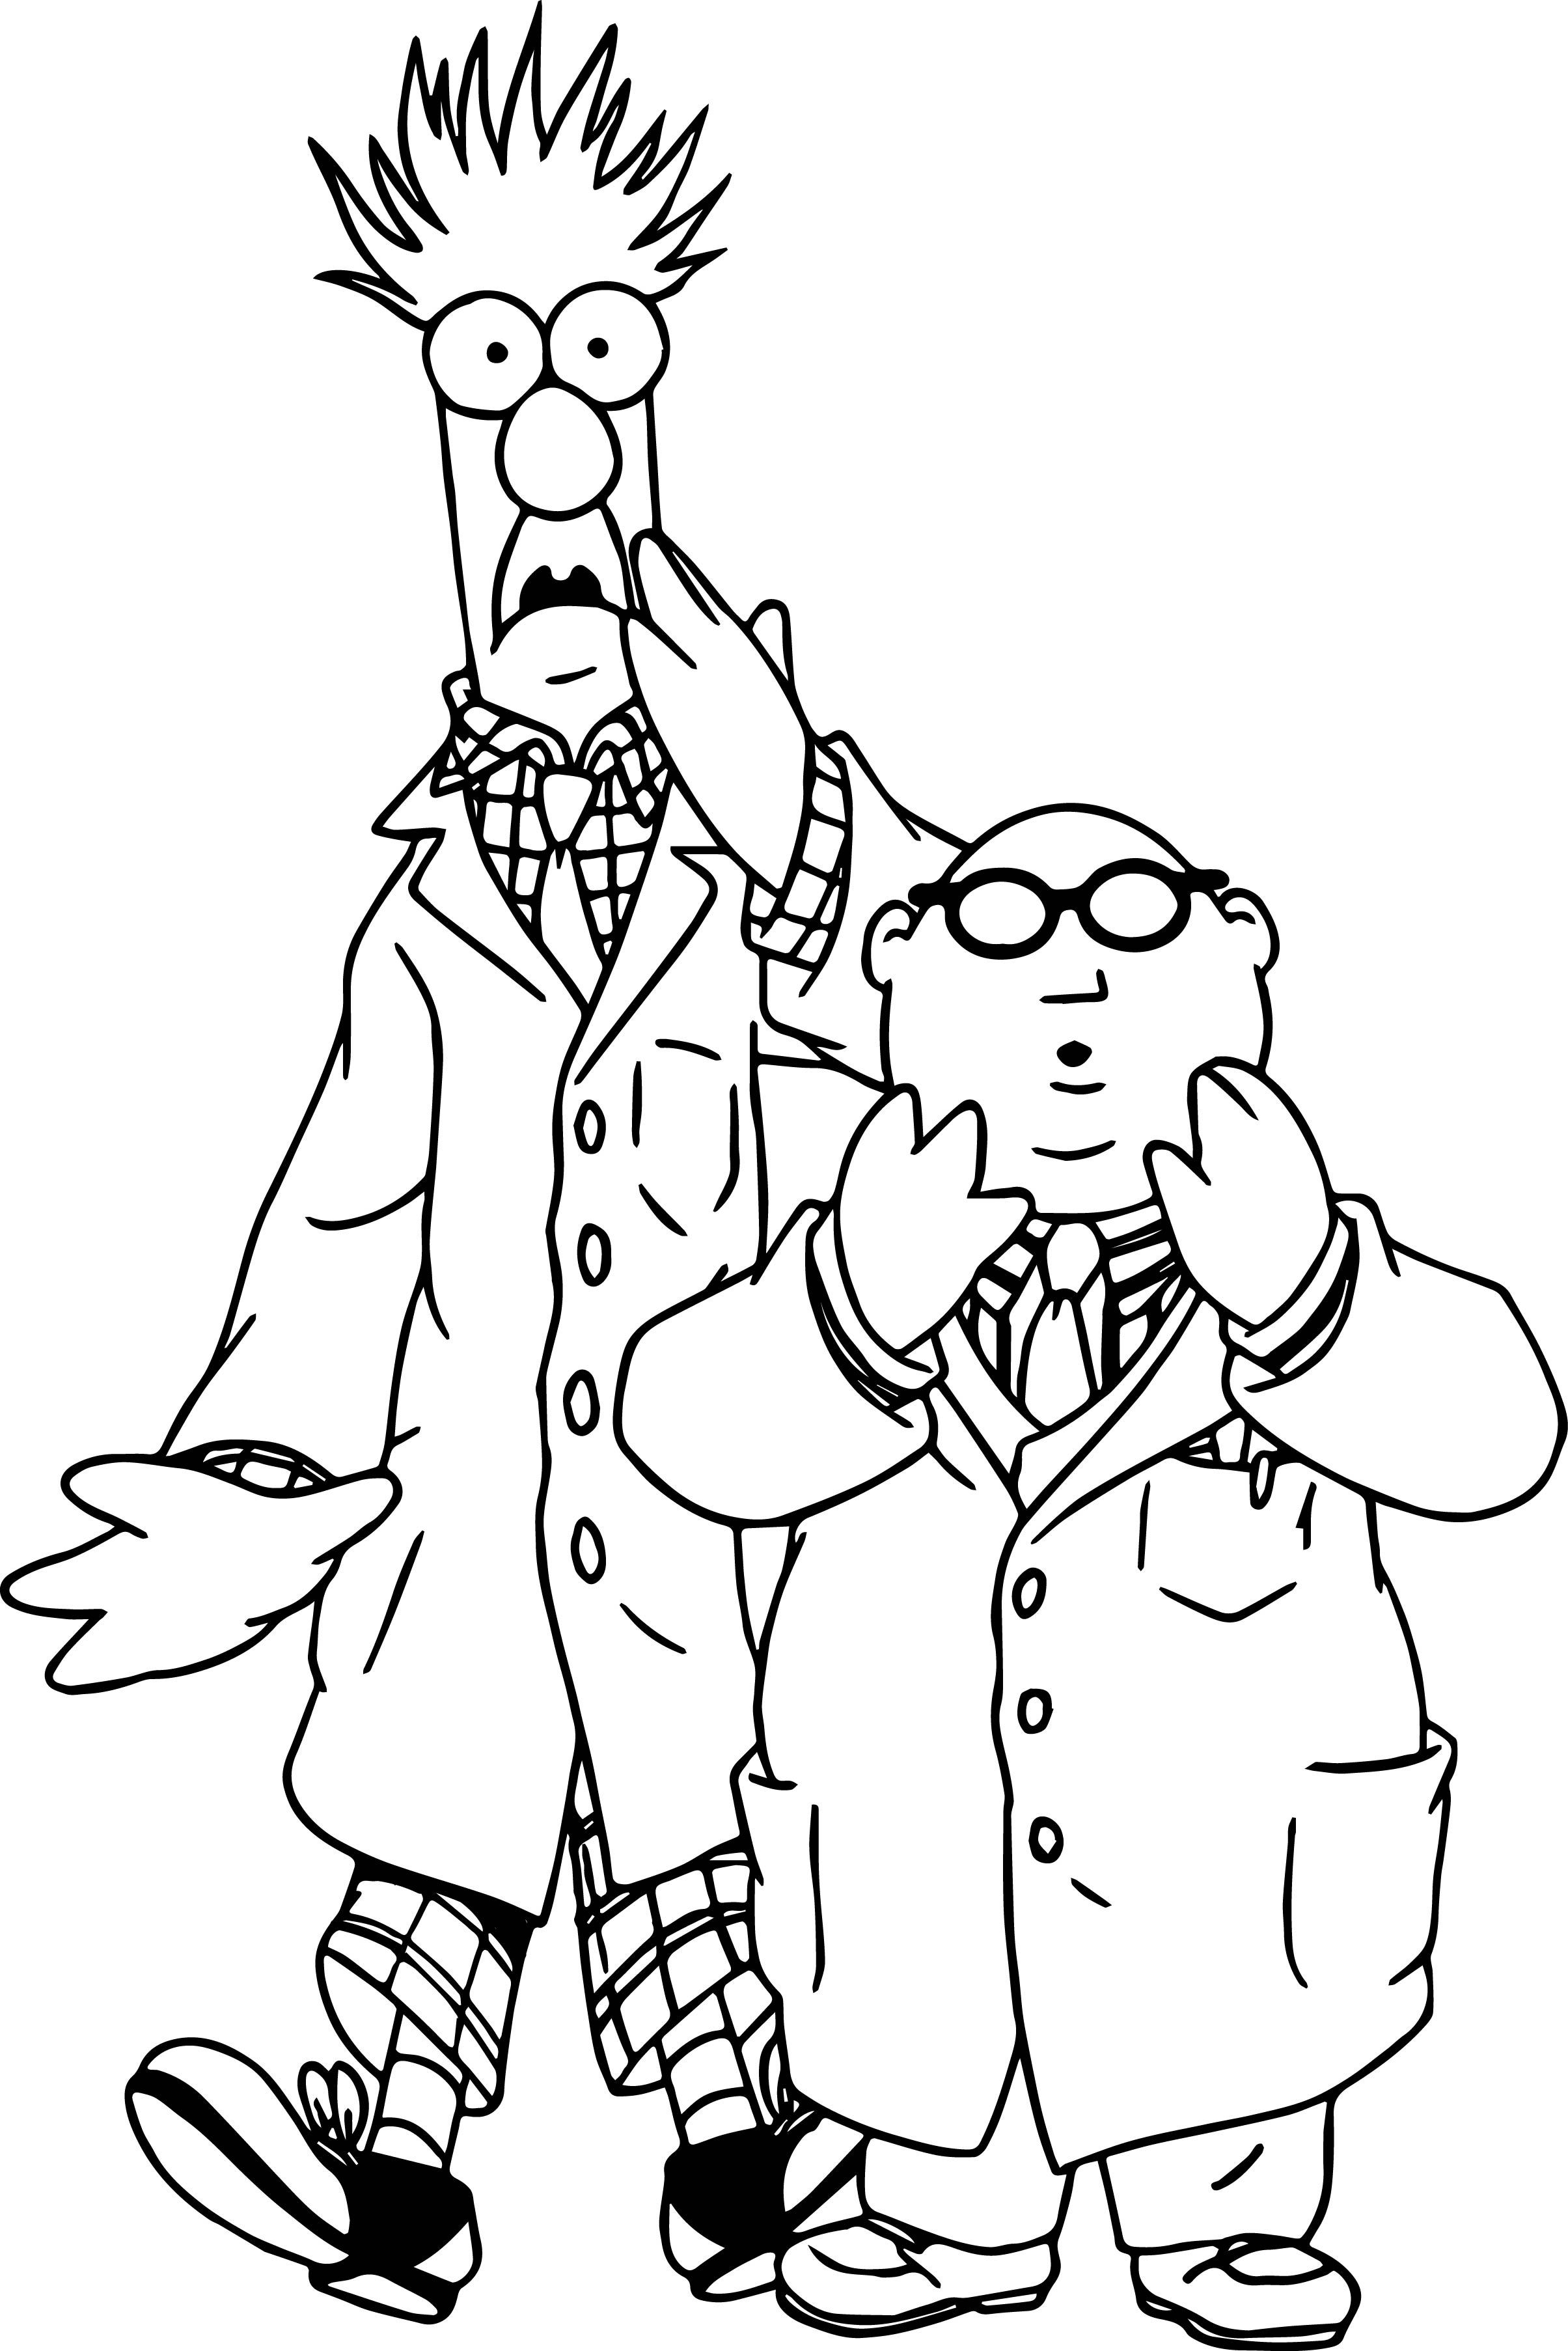 2409x3611 The Muppets Beaker Bunsen Honeydew Shocking Coloring Pages